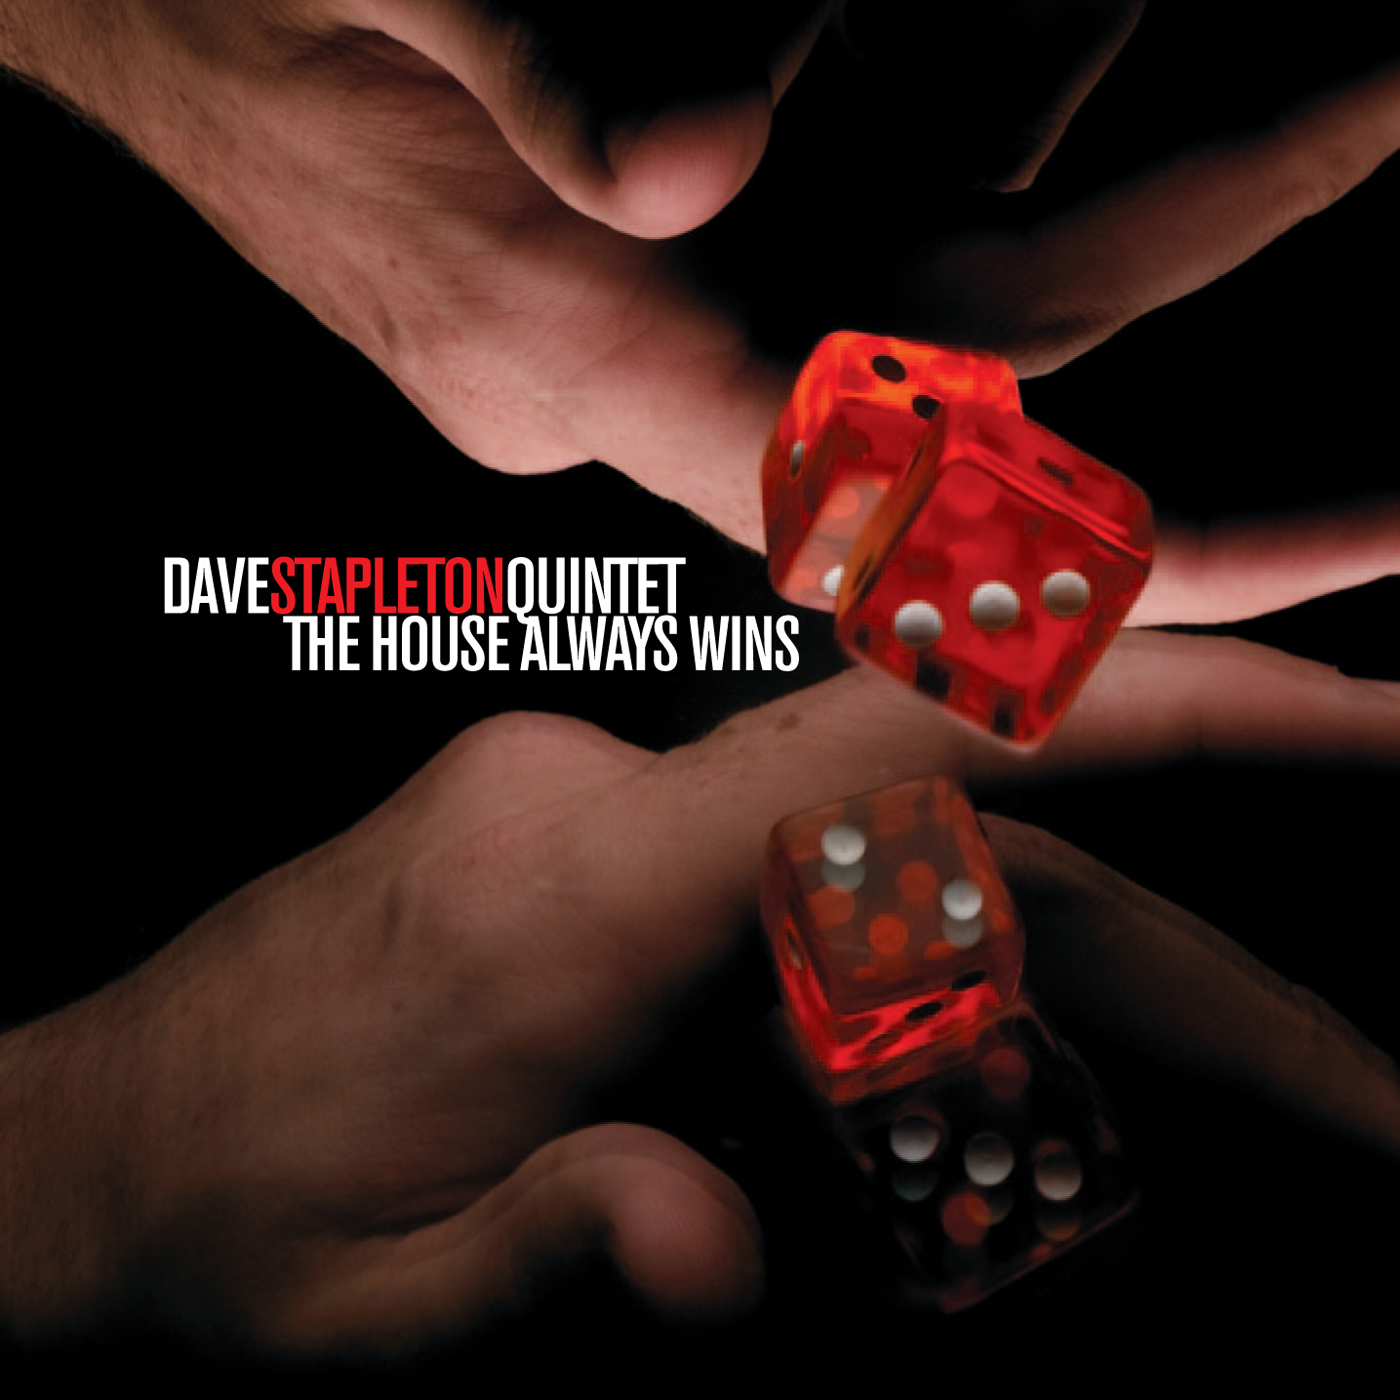 Dave Stapleton - The House Always Wins